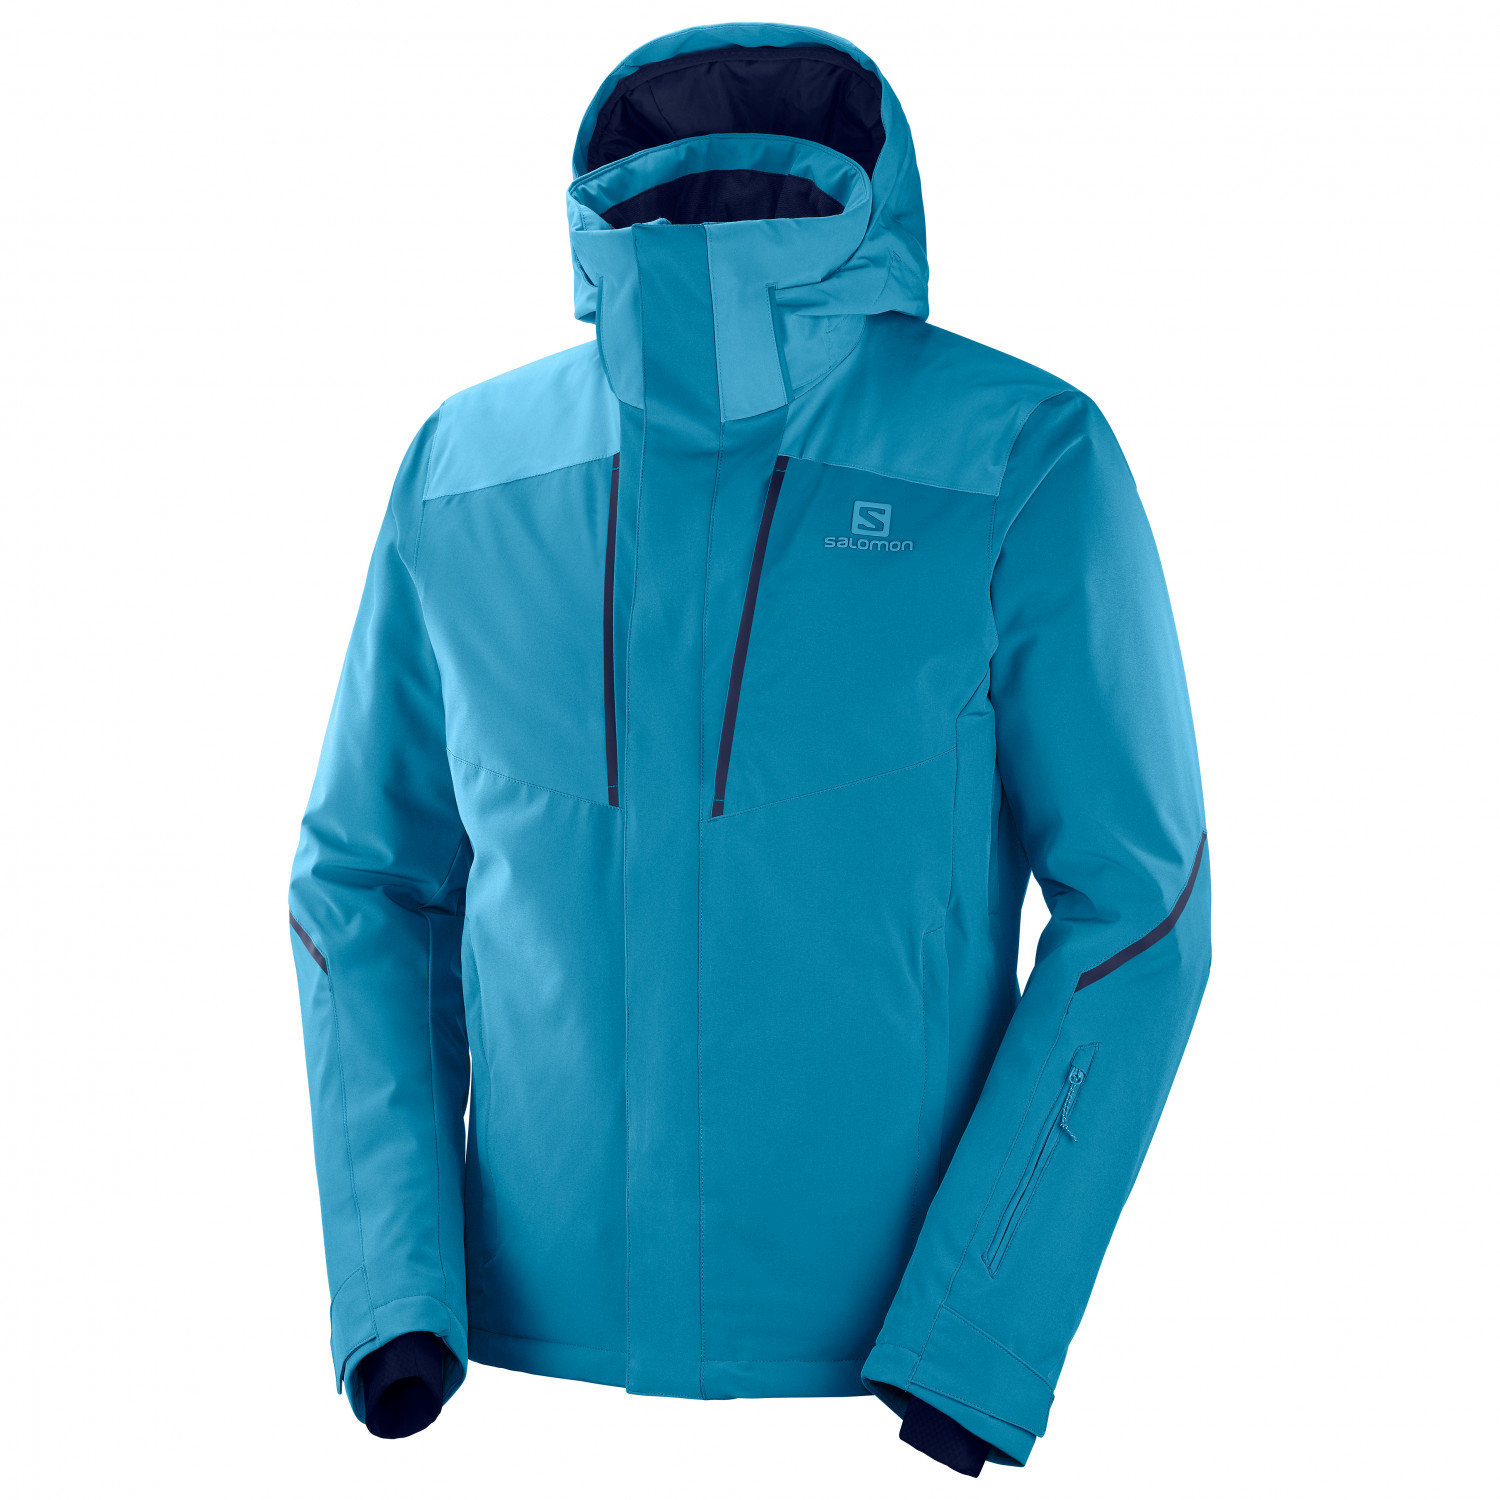 Salomon icerocket Jacket Mens Ski Jacket Winter Jacket Snowboard Jacket New | eBay